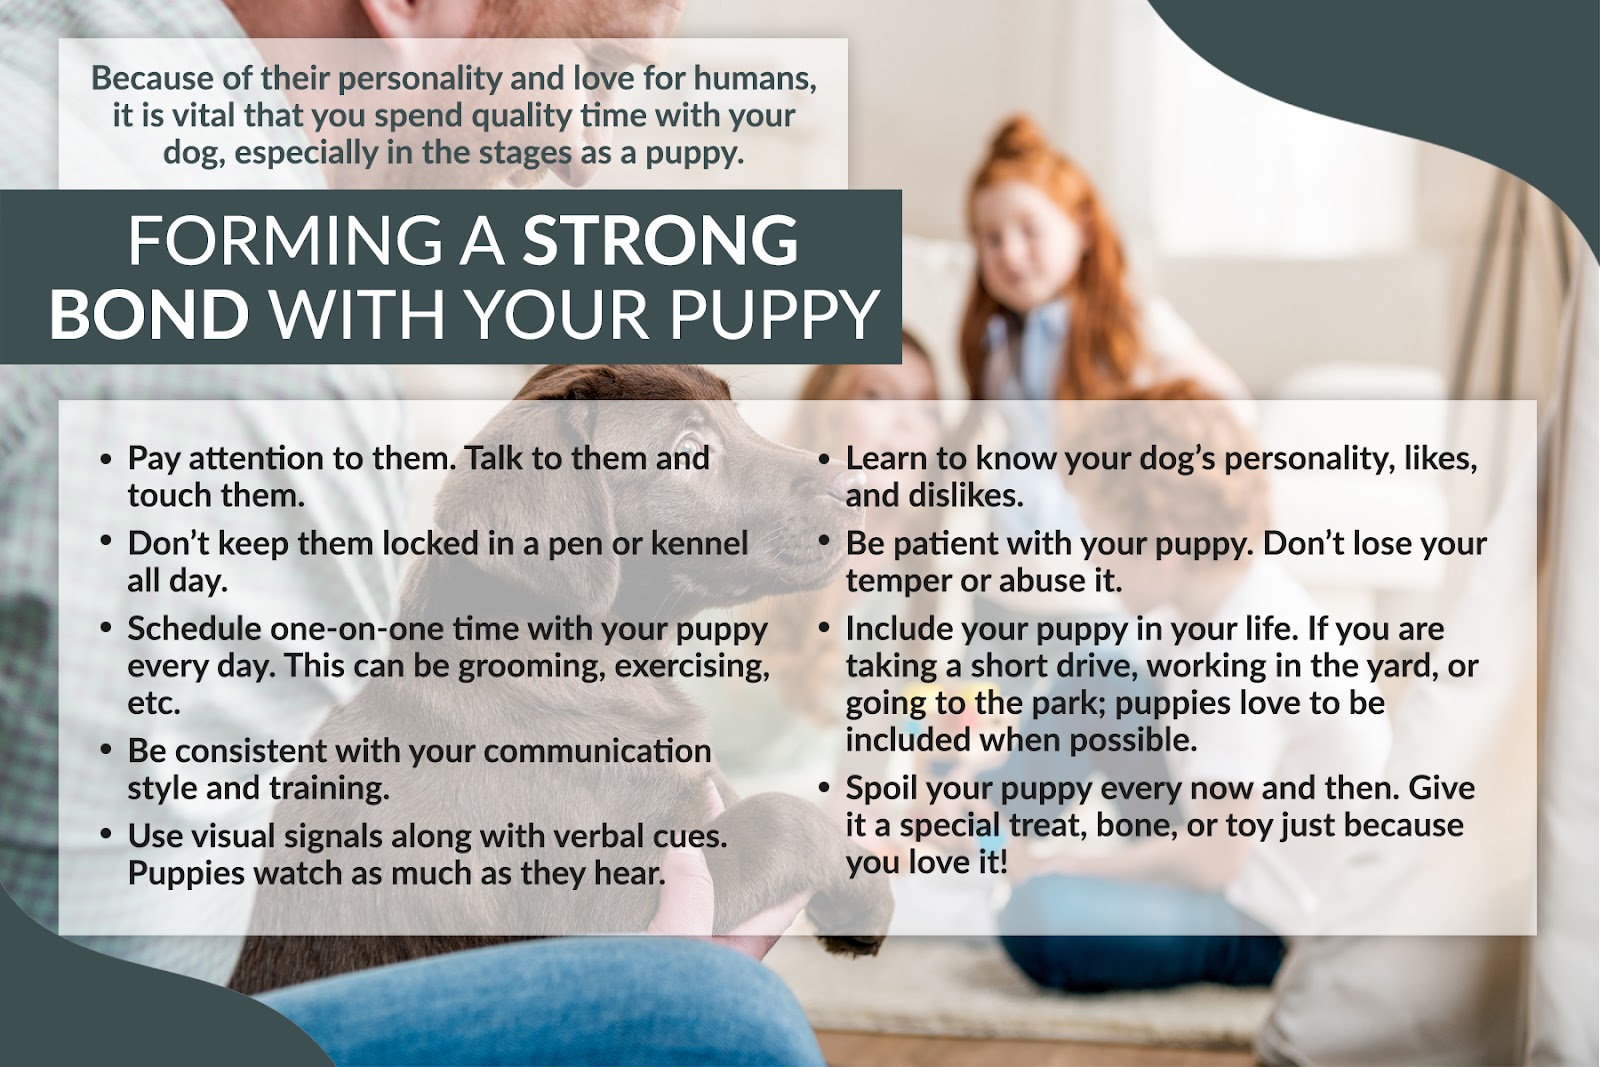 forming a strong bond with your puppy